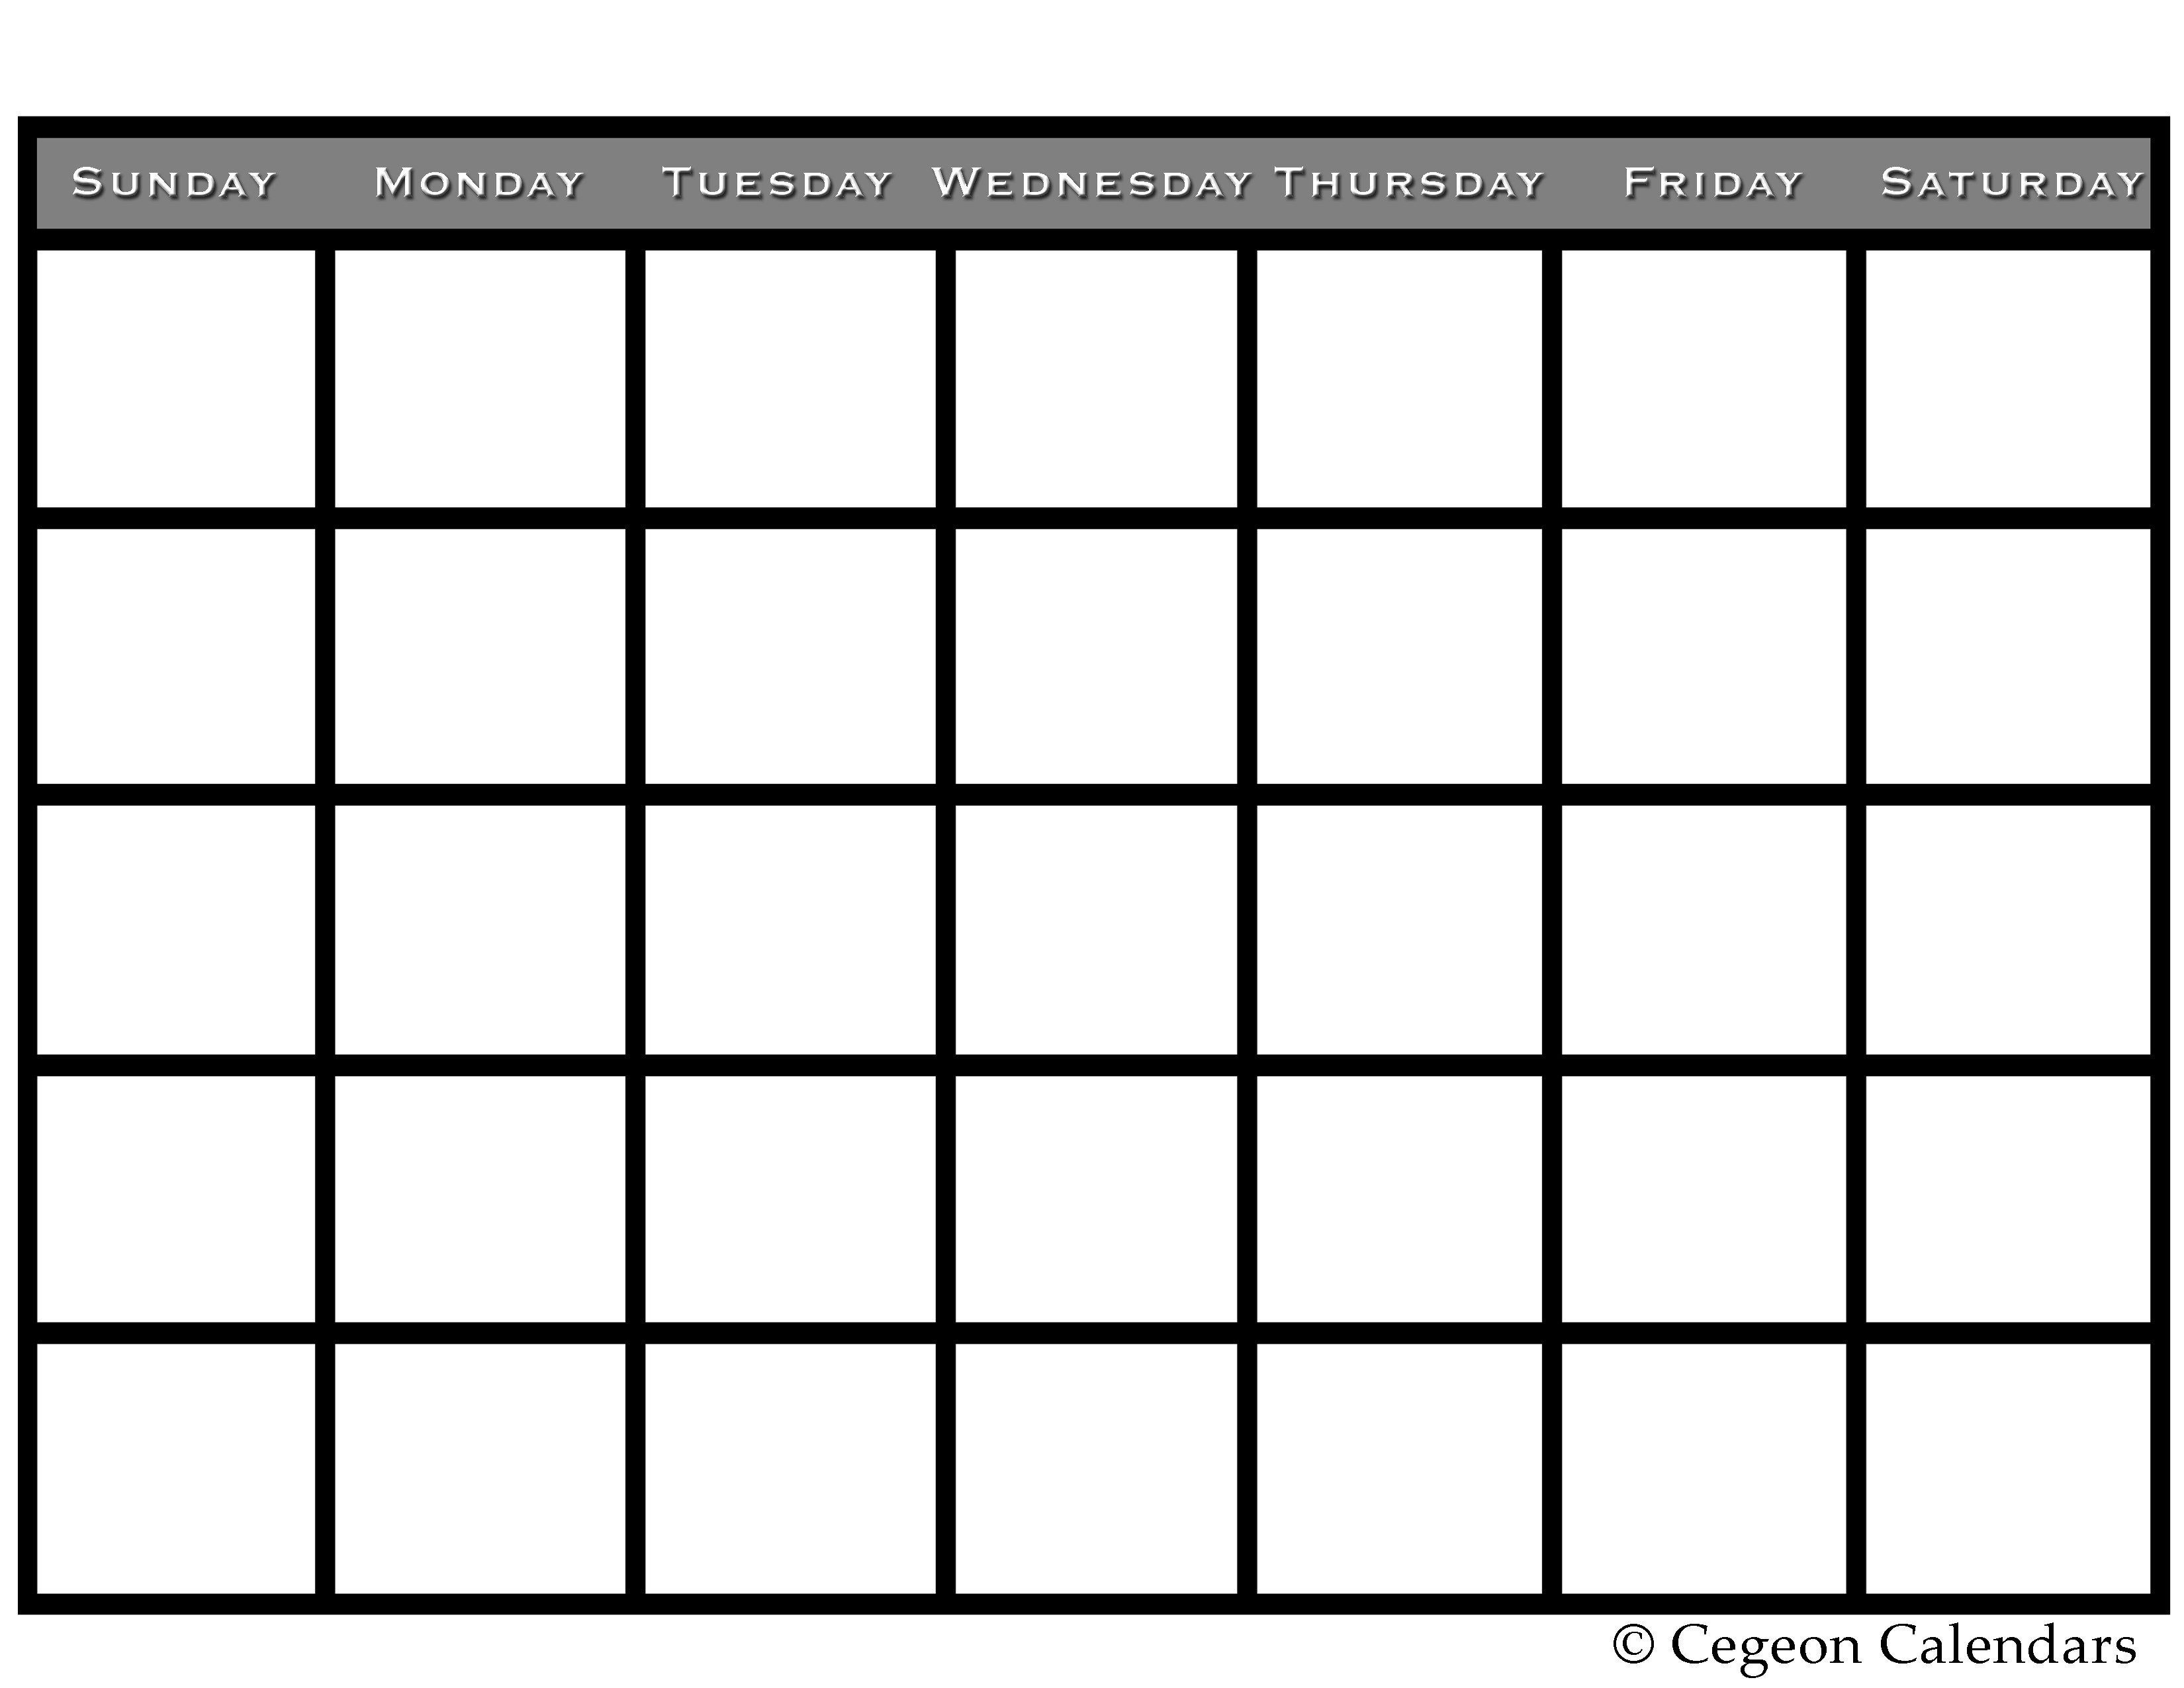 image regarding Blank Spreadsheet to Print named √ Blank Spreadsheet Toward Print High definition Photos How can I consider the